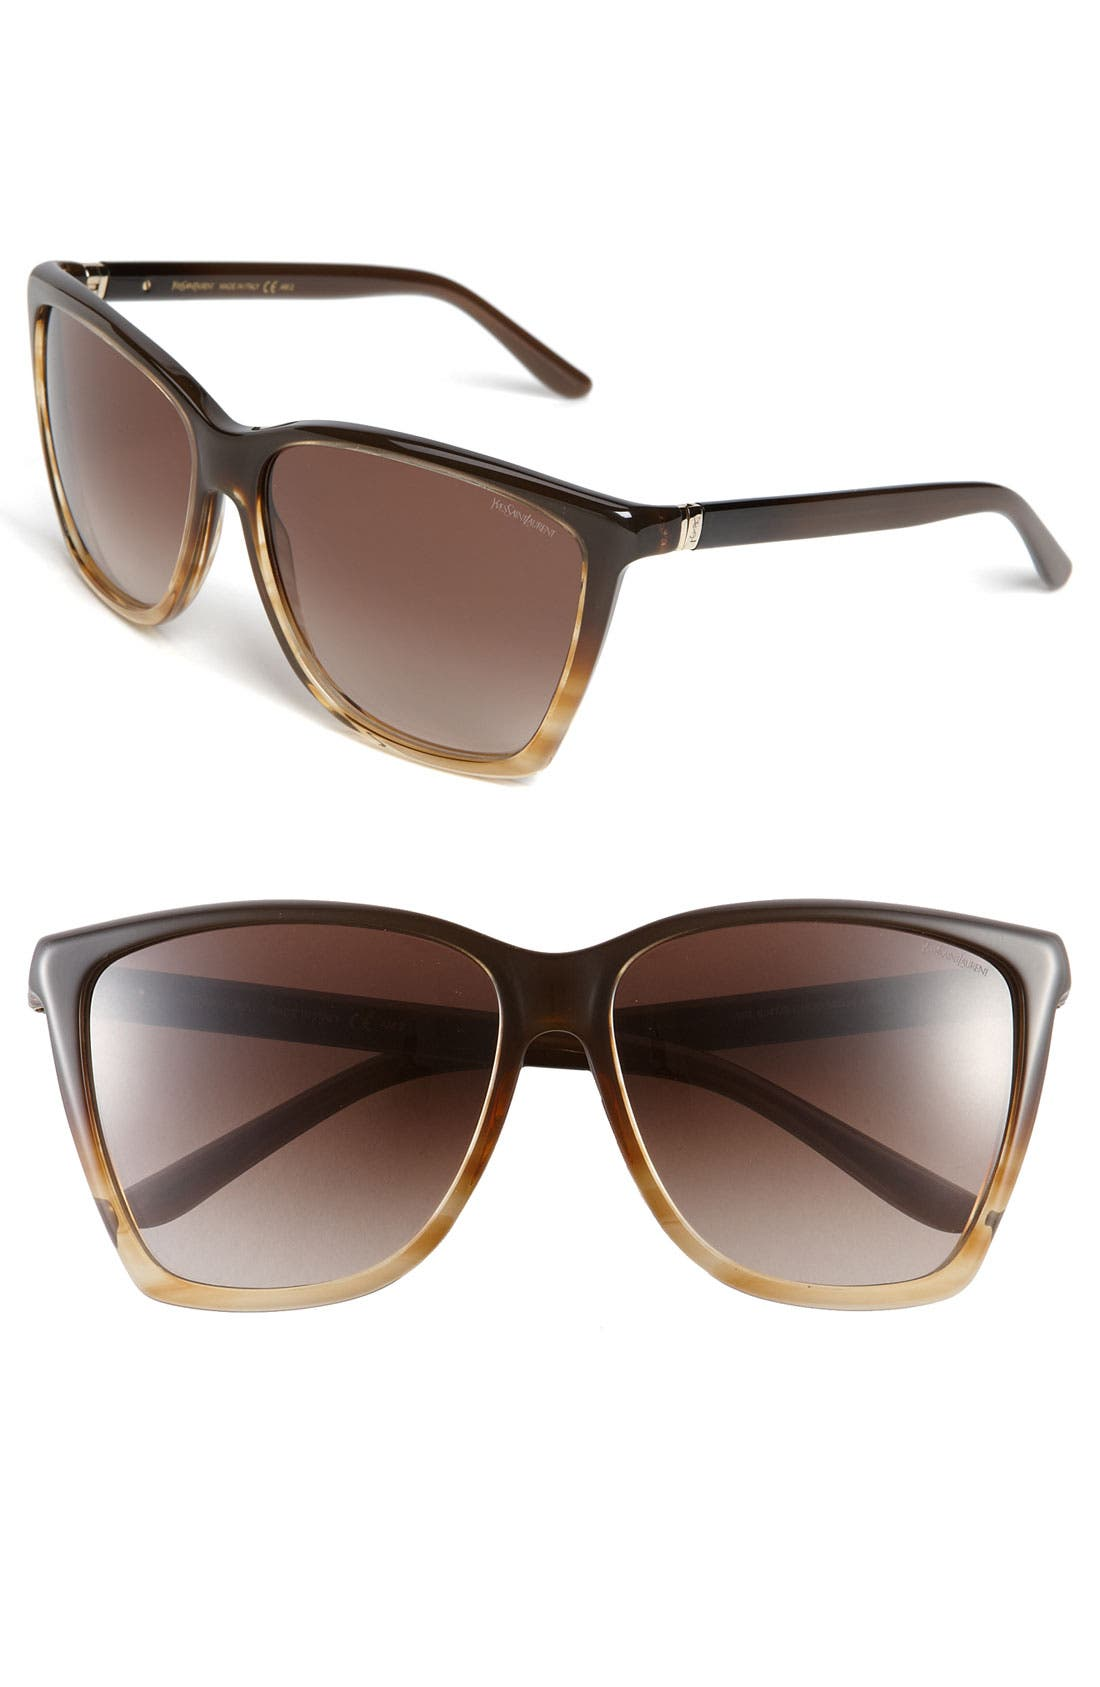 Main Image - Yves Saint Laurent Retro Inspired Sunglasses